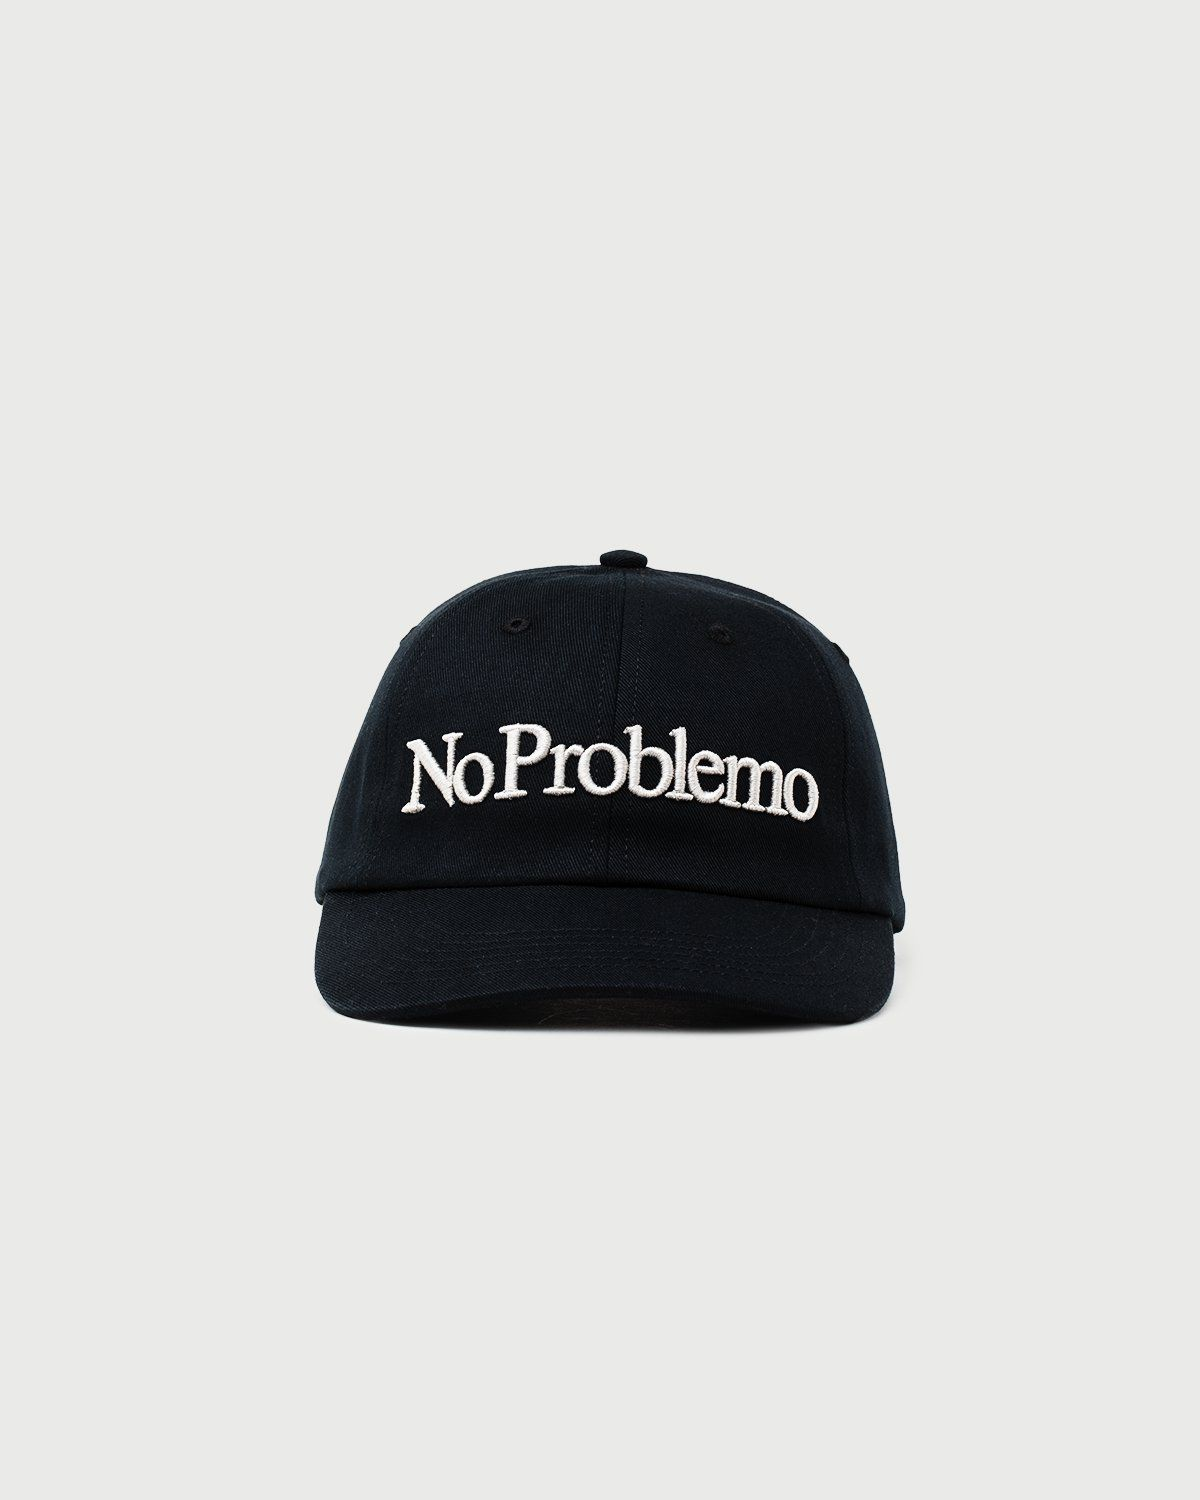 Aries - No Problemo Cap Black - Image 1